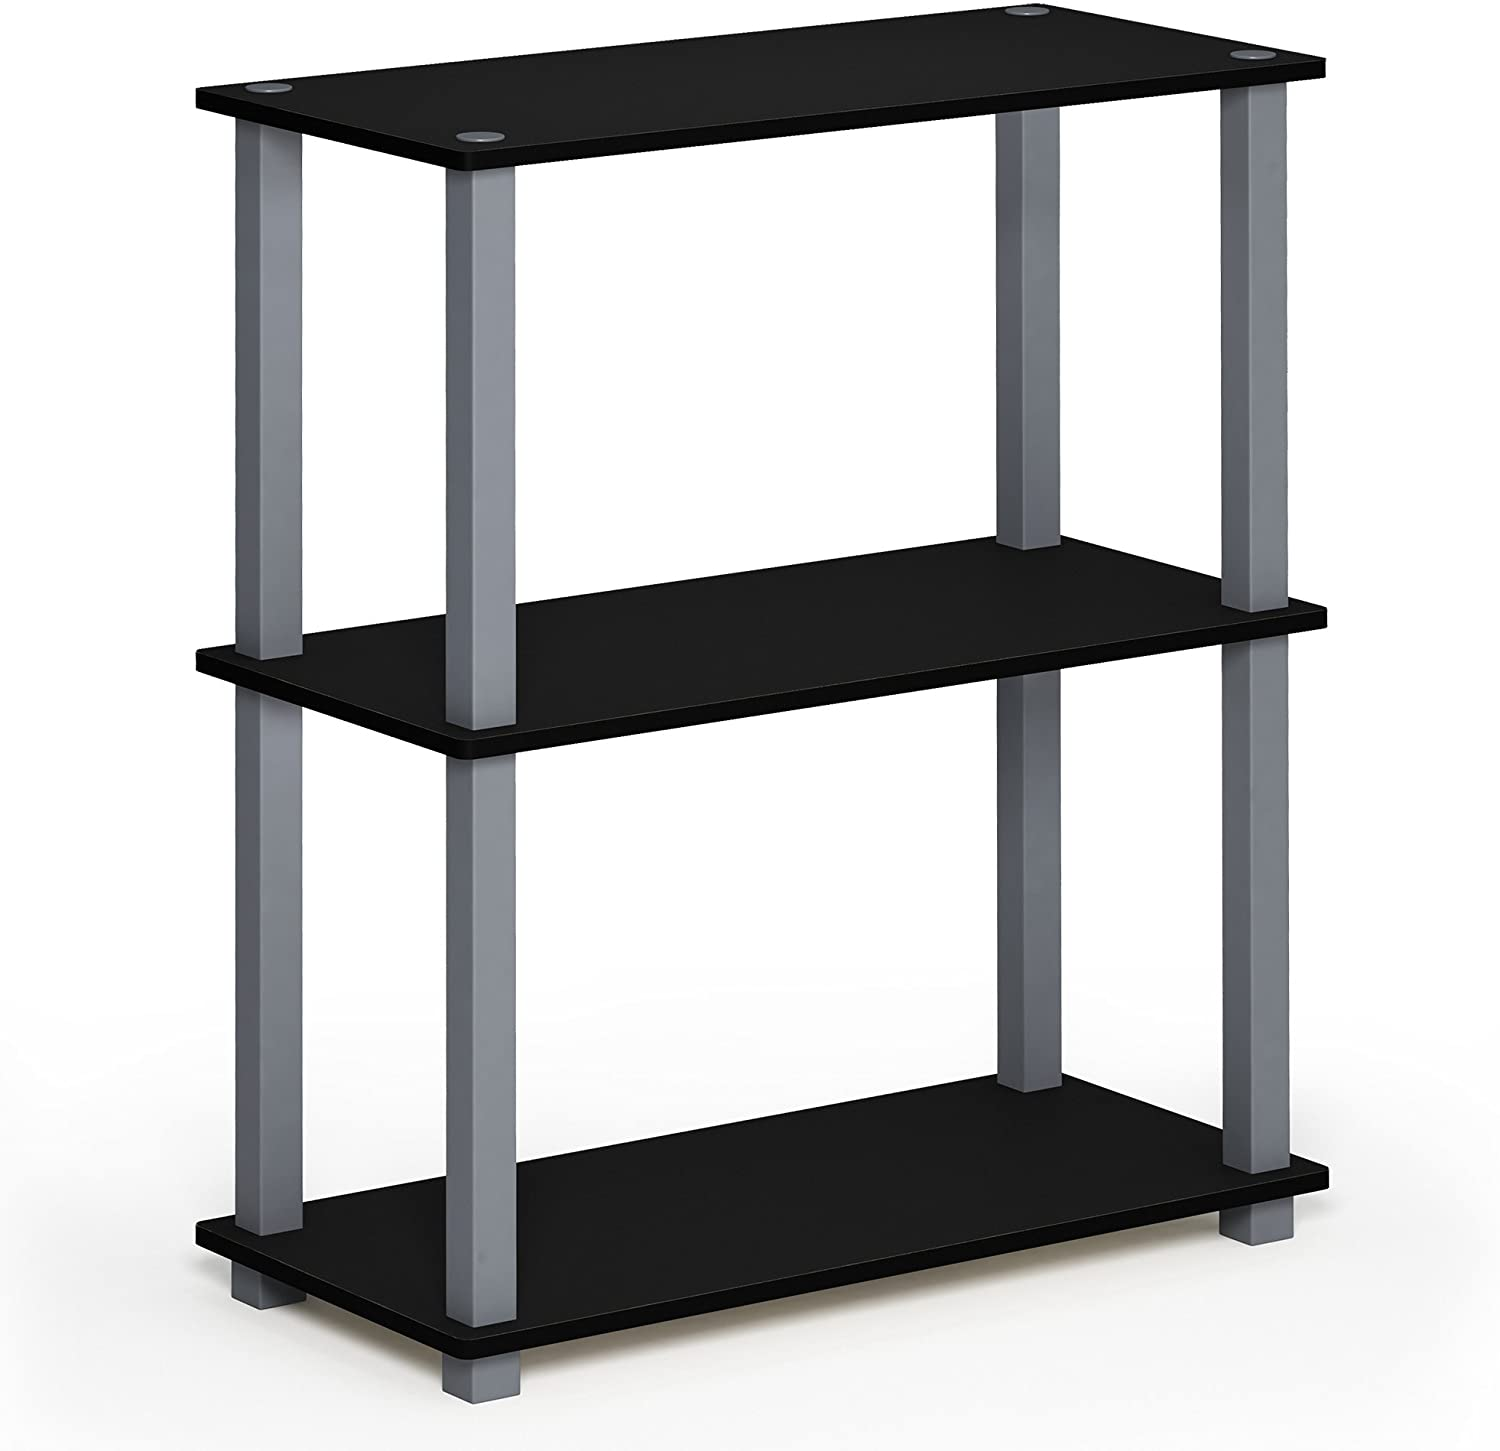 2. FURINNO Multipurpose Shelf Display Rack